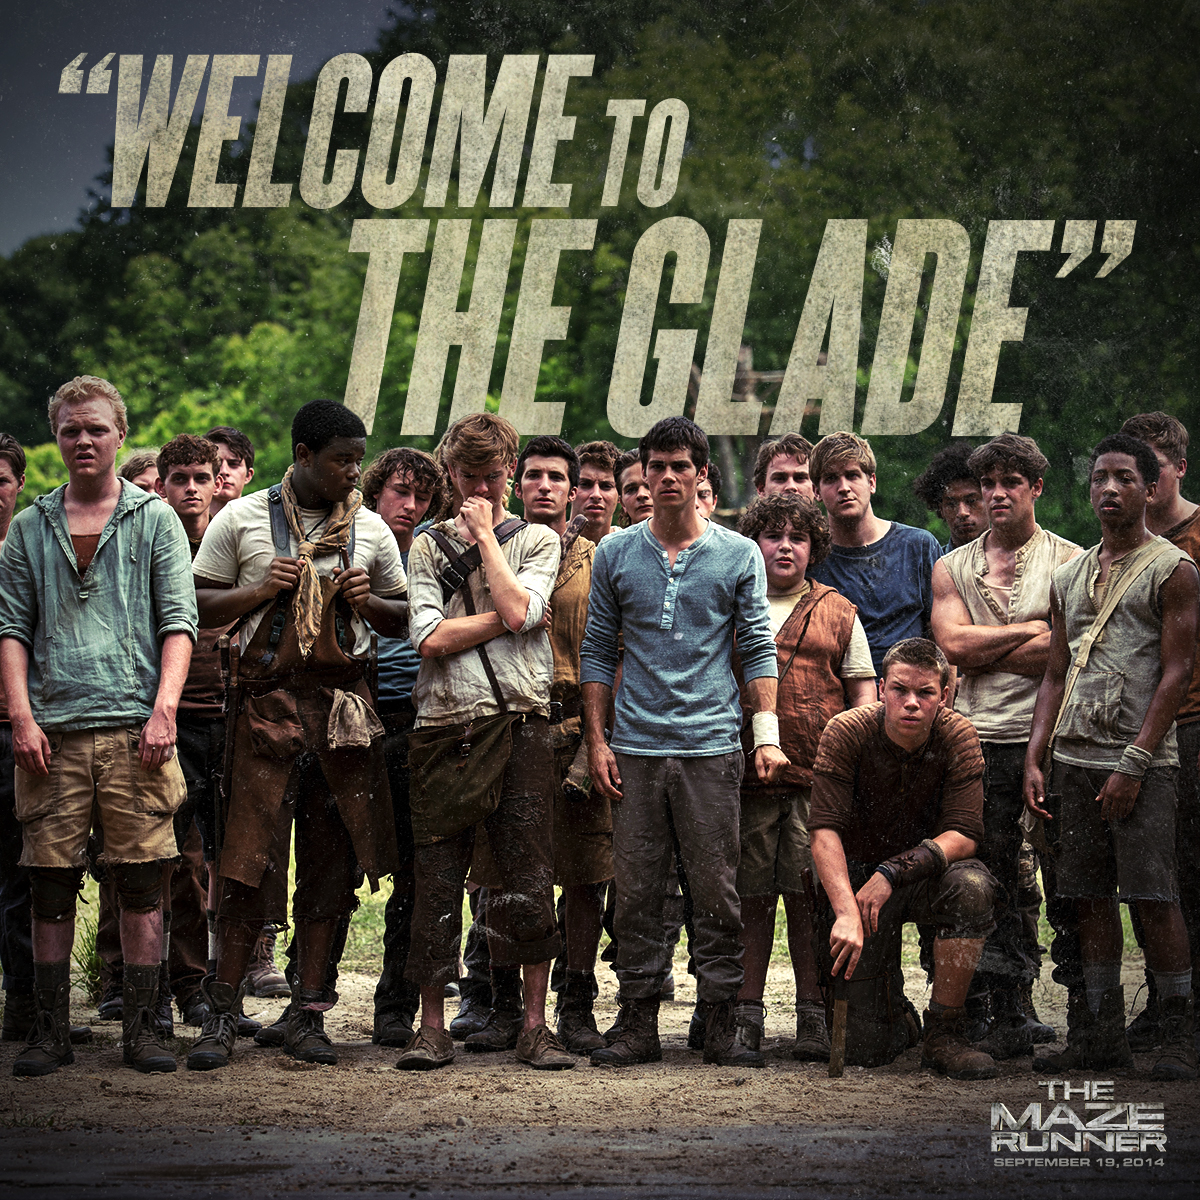 How Well Do You Know The Maze Runner Proprofs Quiz